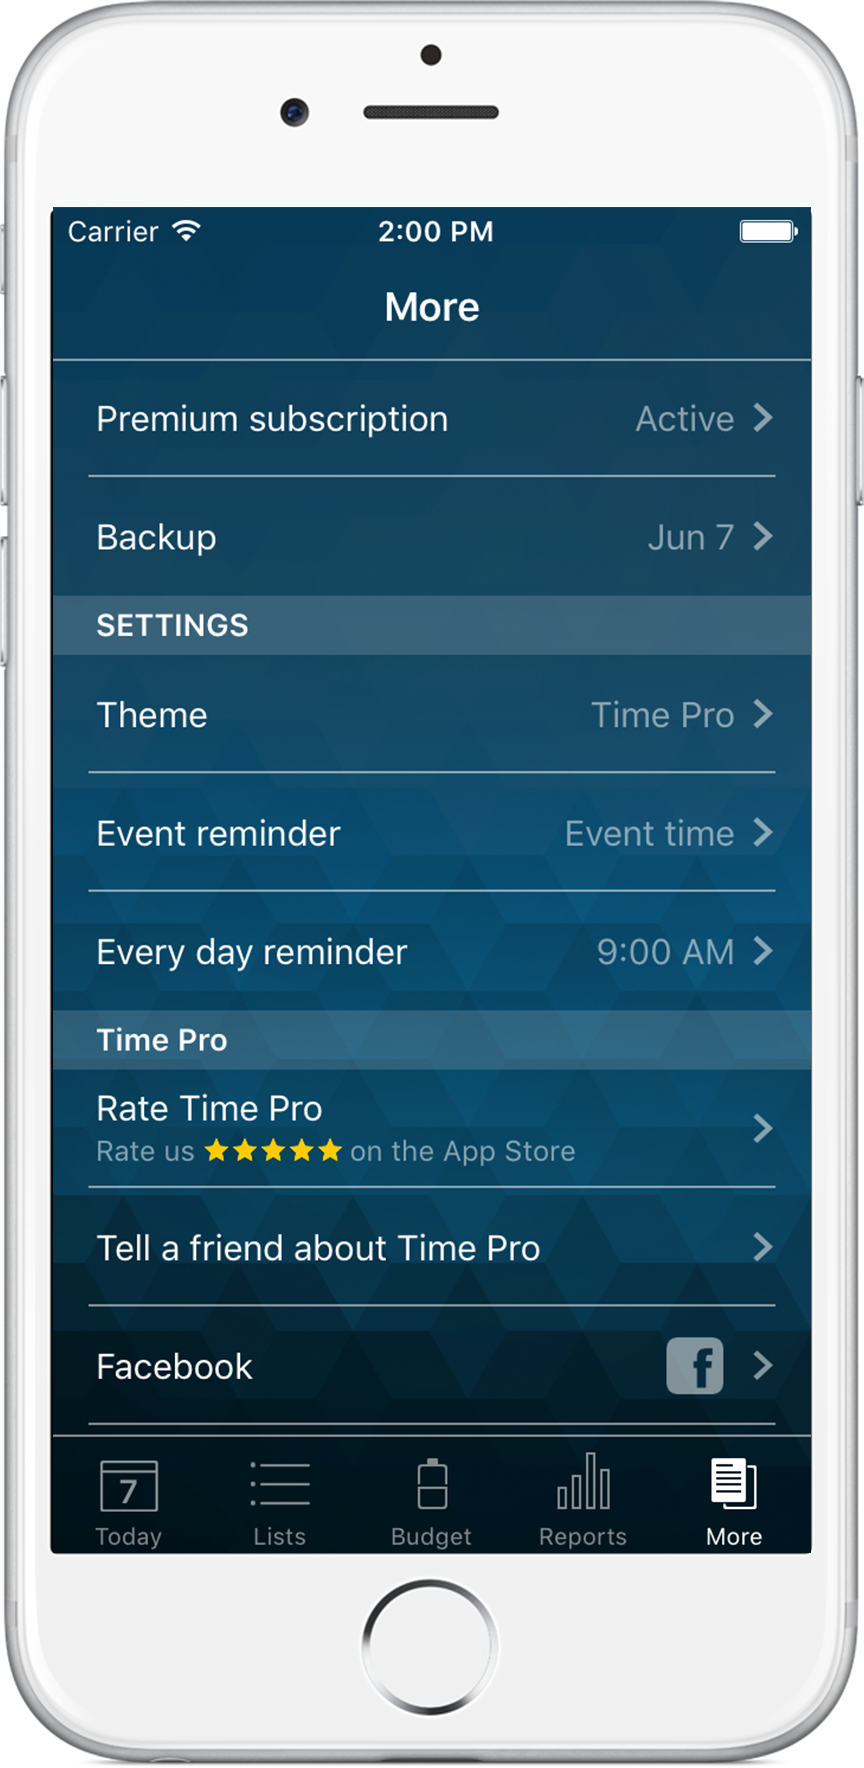 Time Pro for iPhone - More